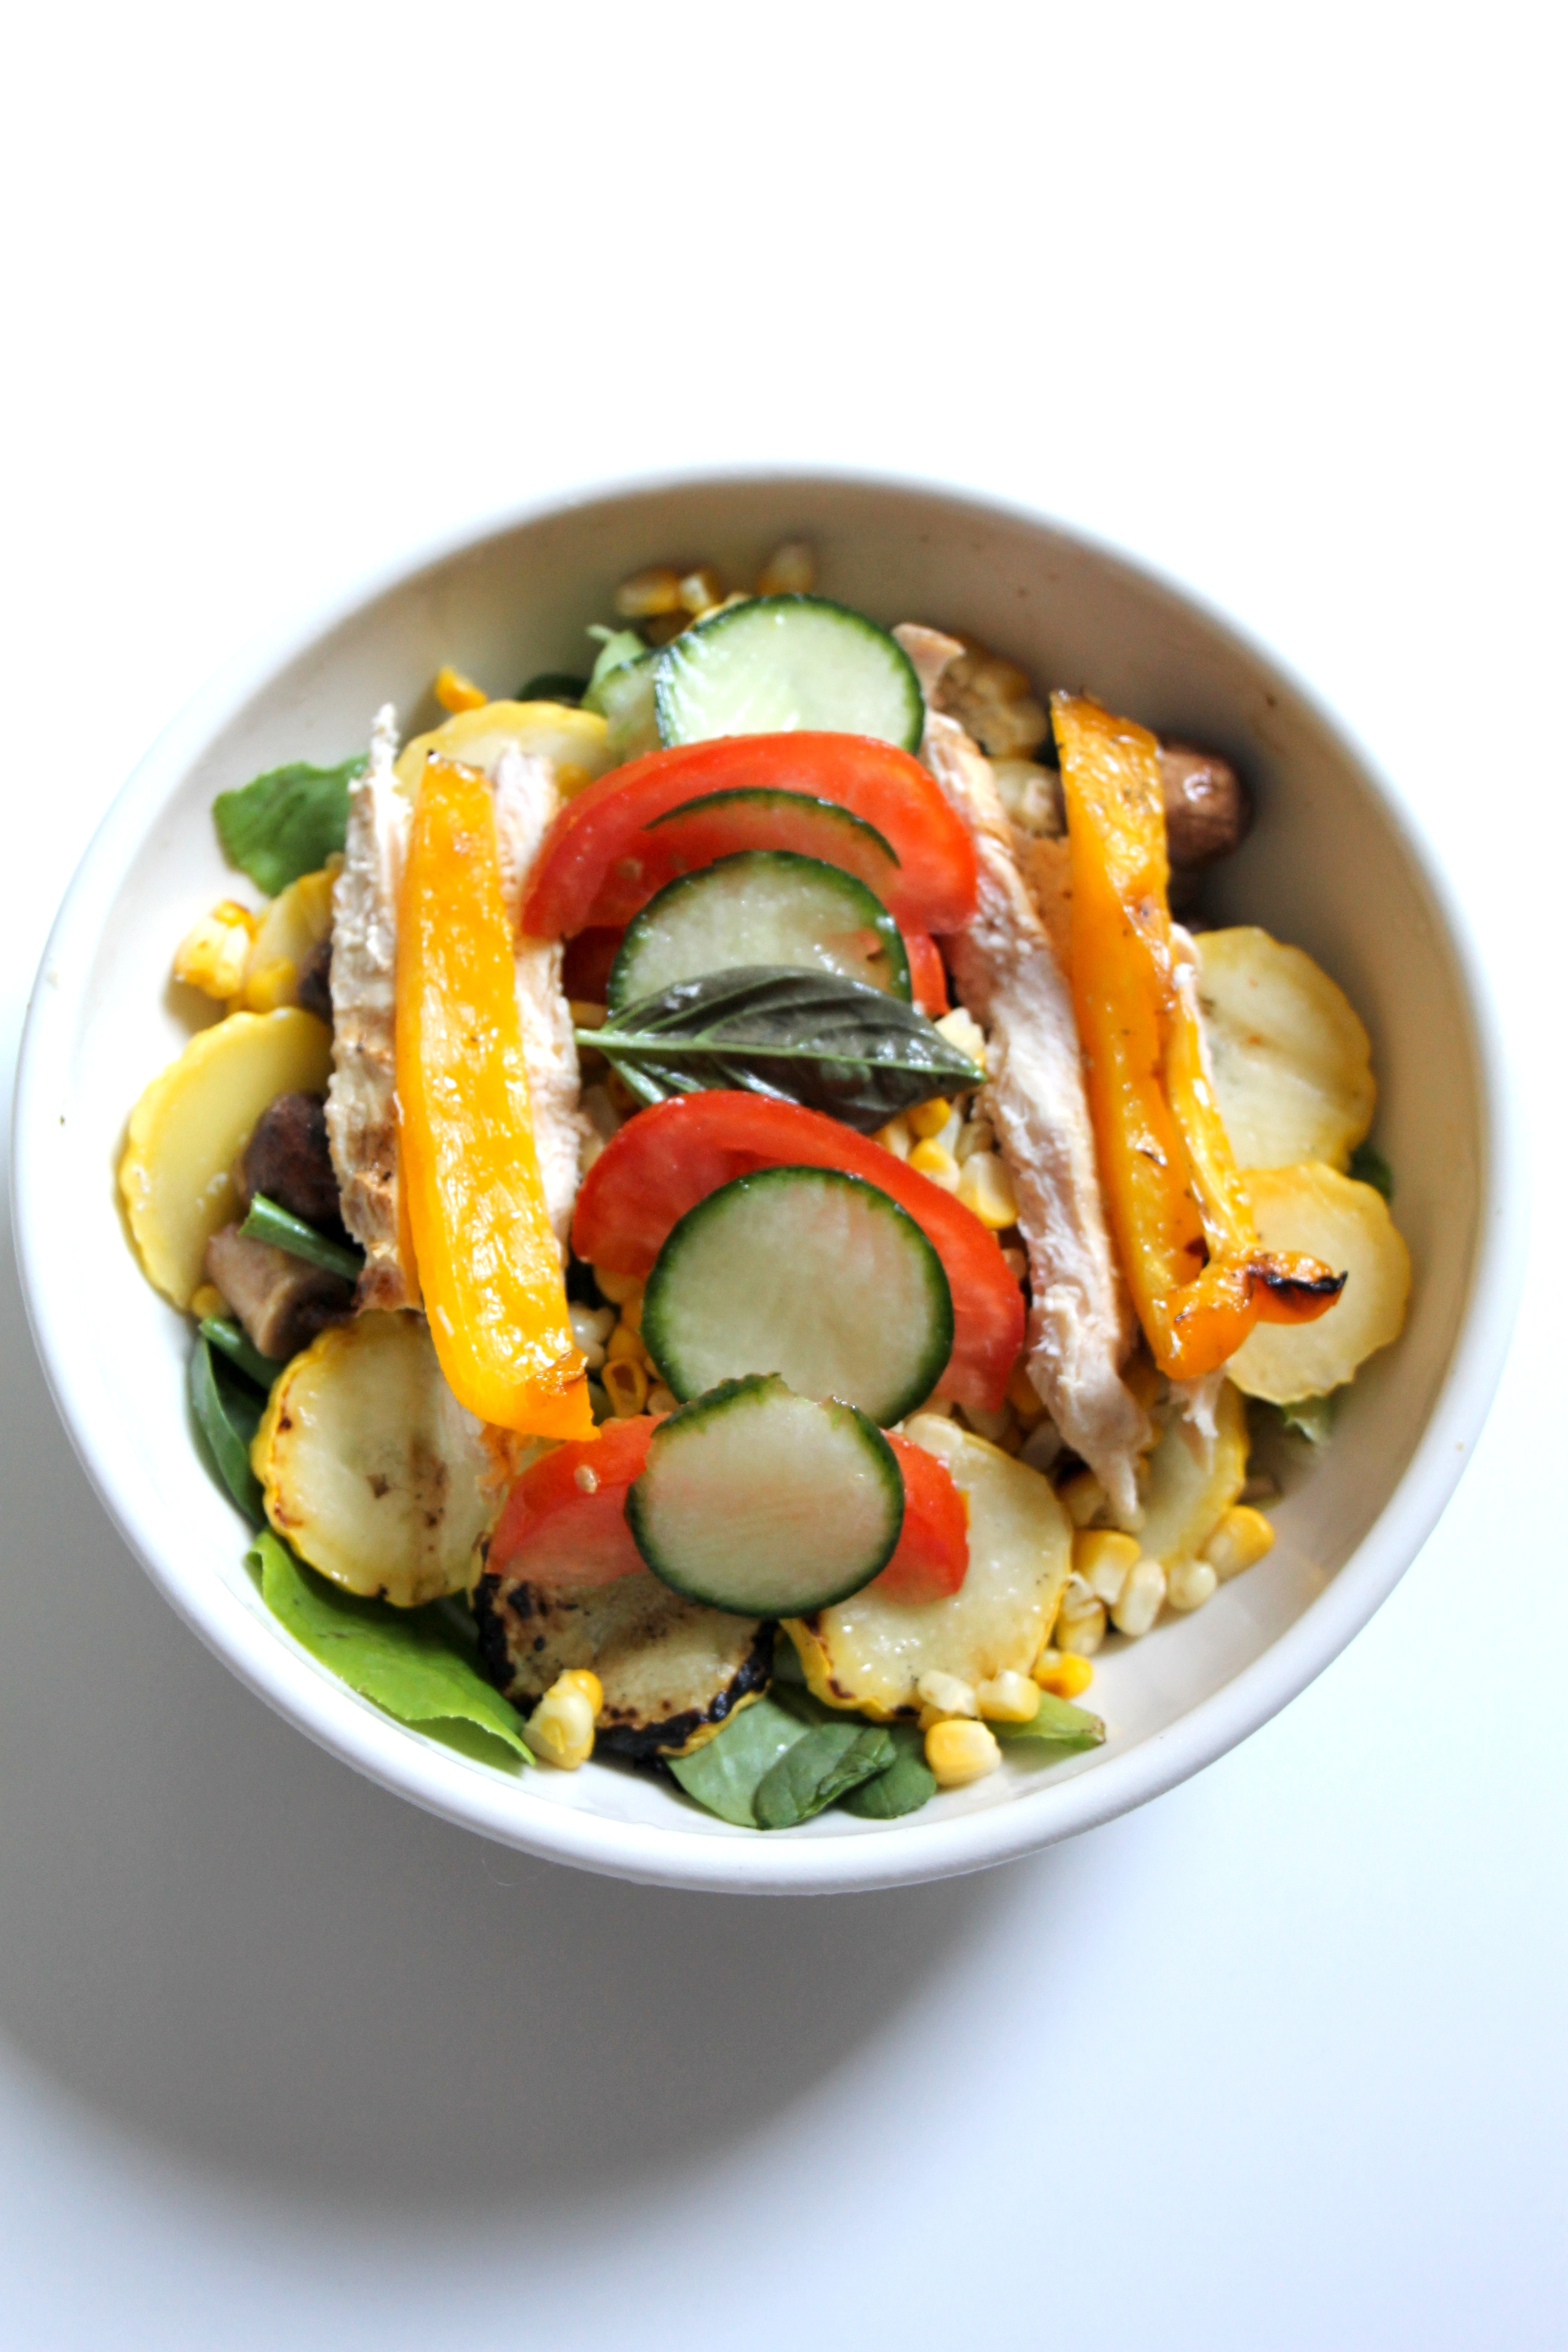 A combination of grilled vegetables and toppings chosen for color, texture and taste compose a first rate salad.